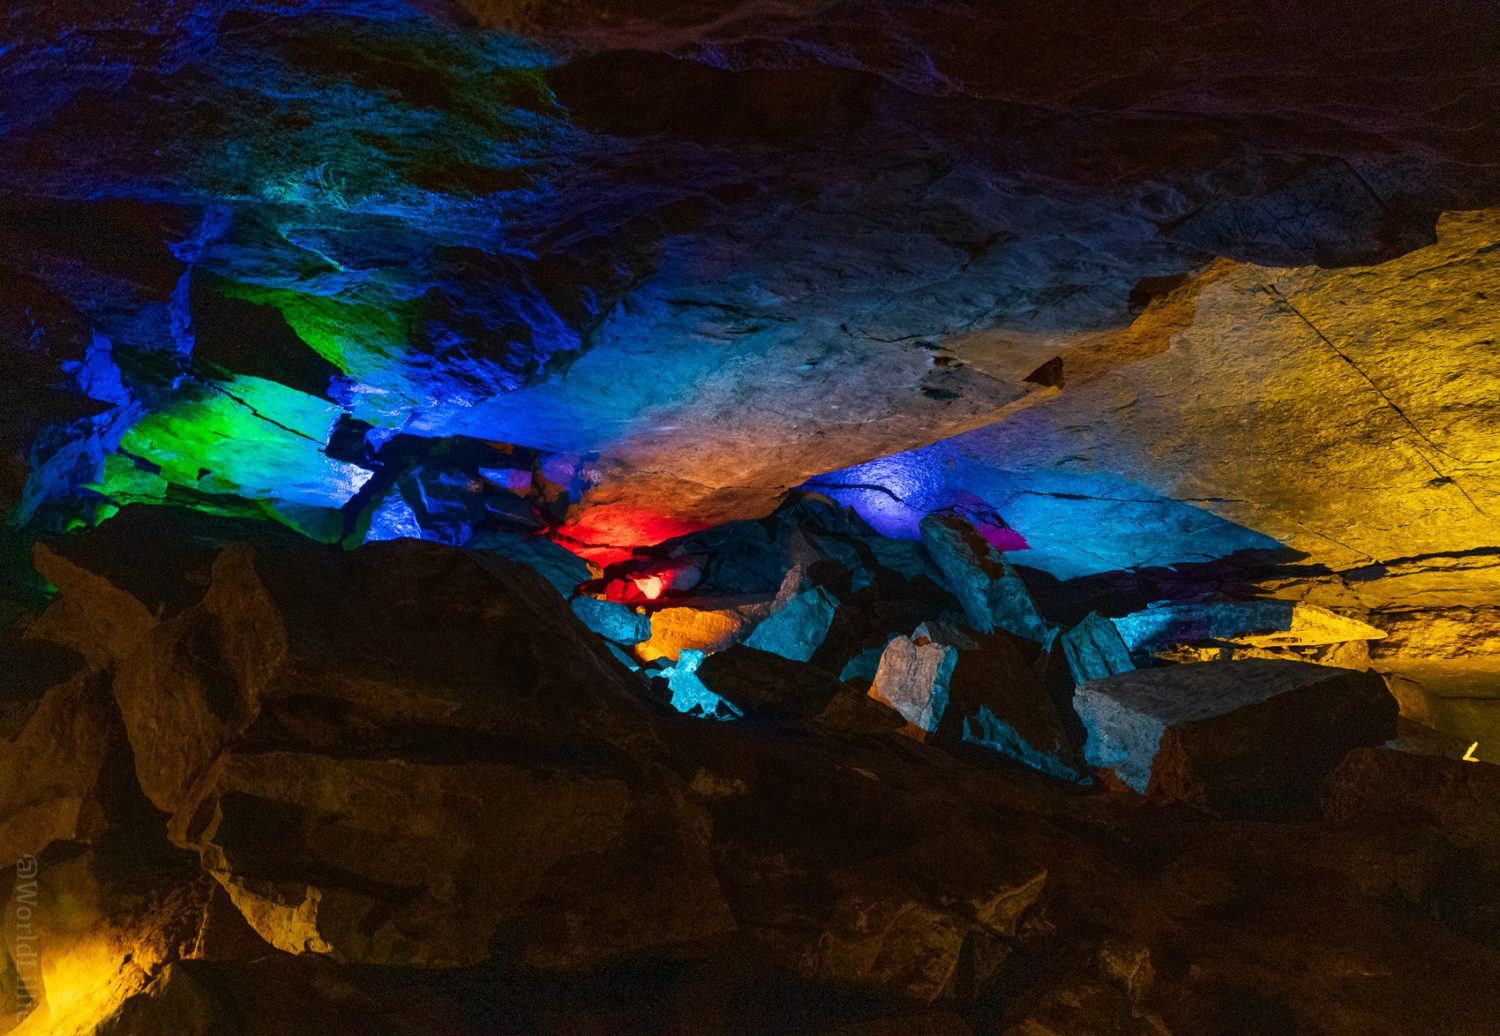 The colored lights are beautiful touch in the caverns.